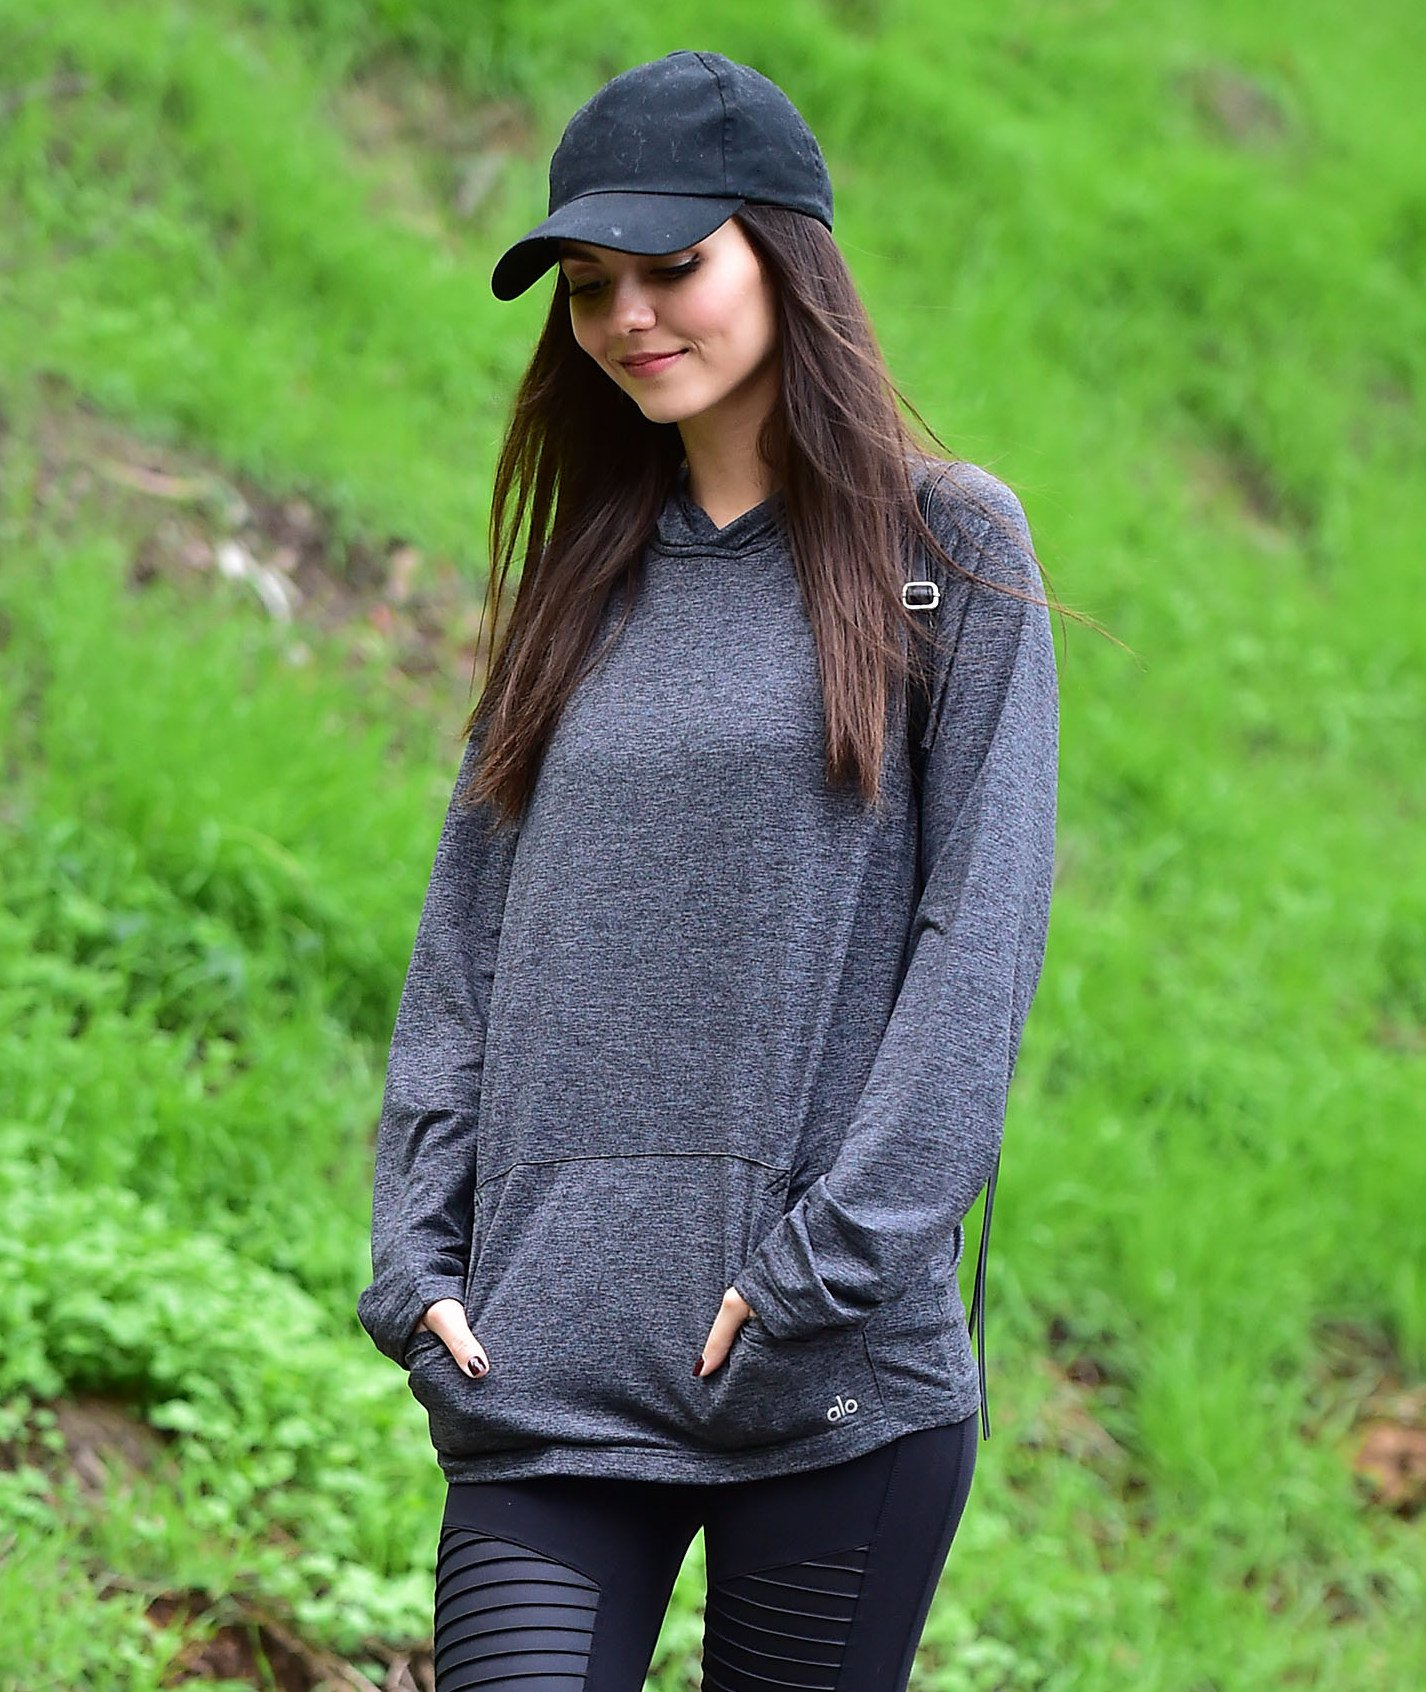 Victoria Justice Hiking